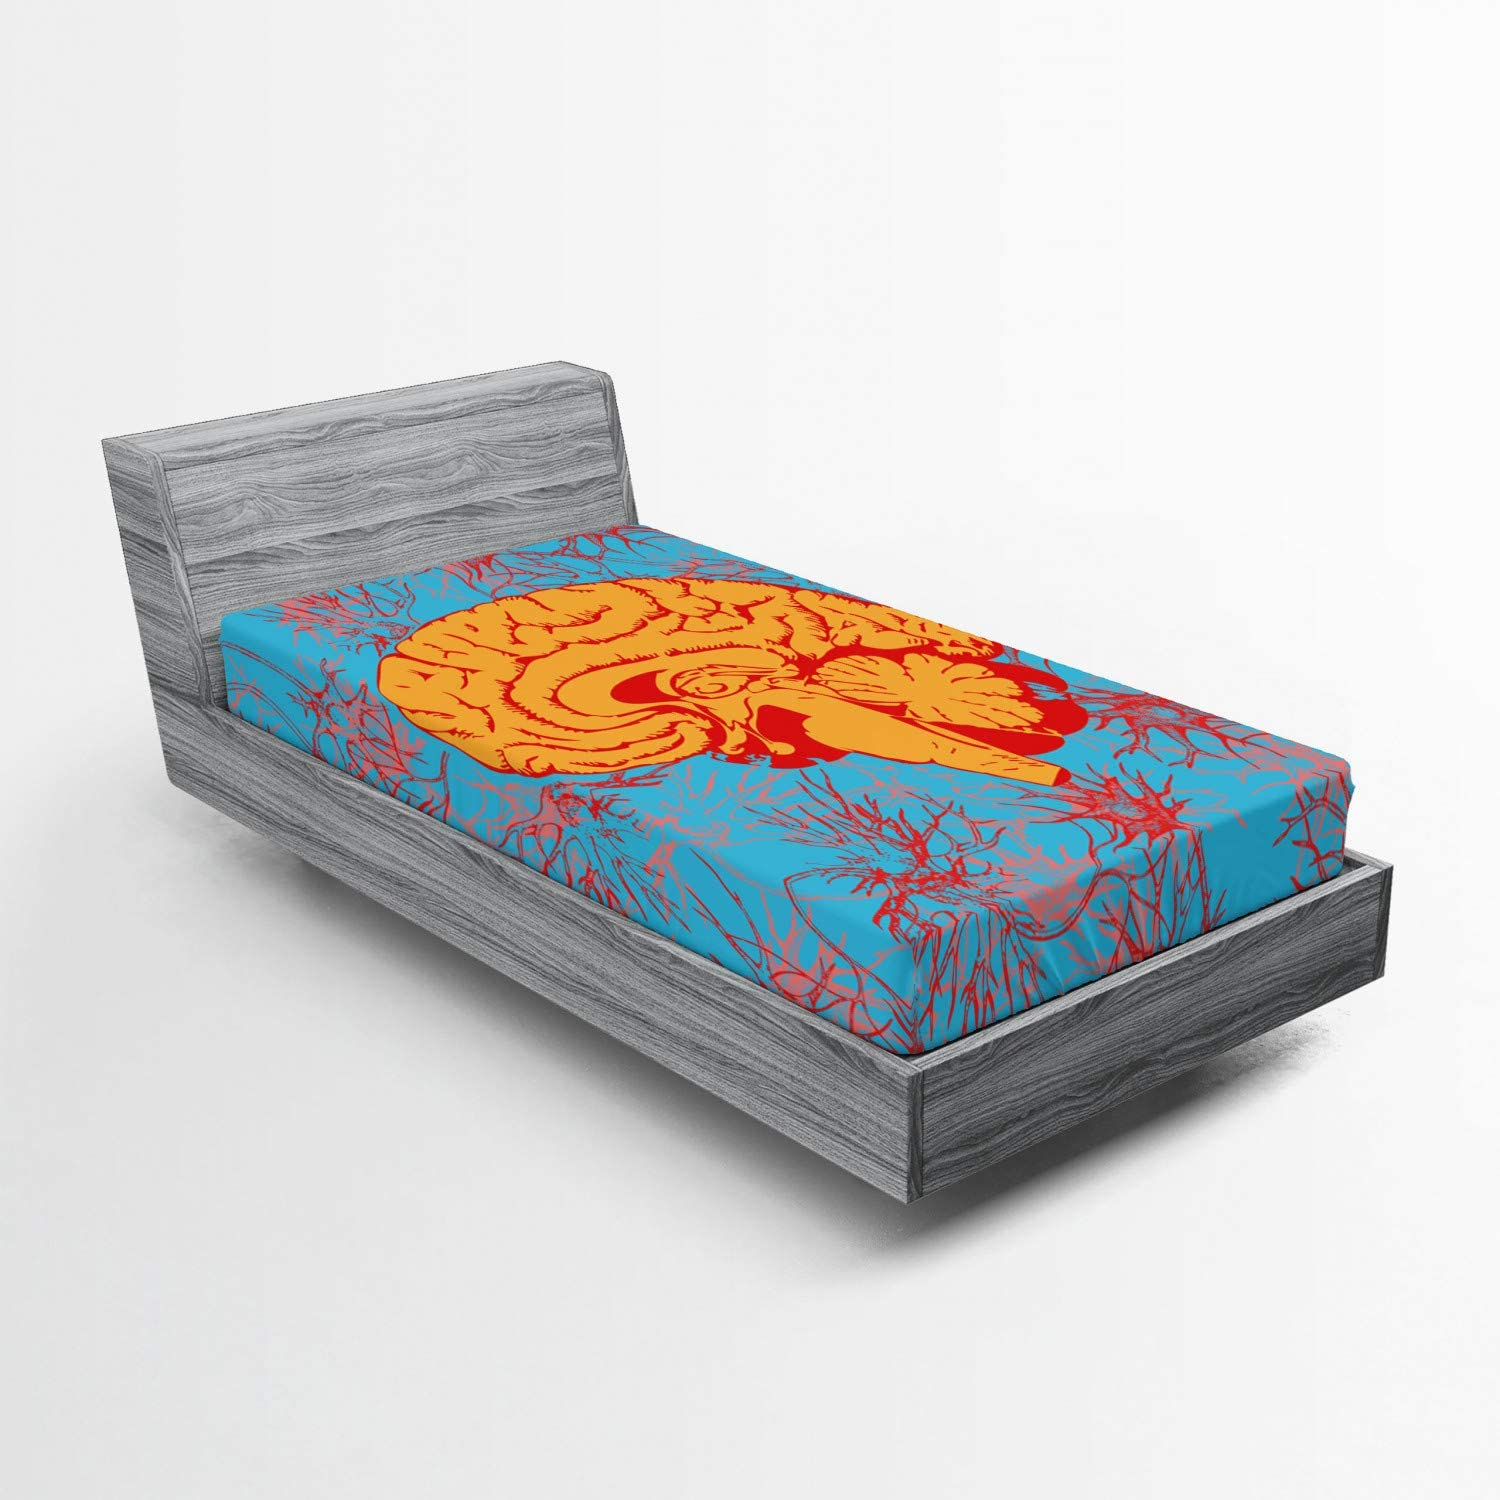 Lunarable Surrealistic Fitted Sheet Human 4 years warranty N Penetrated Brain by Sales results No. 1